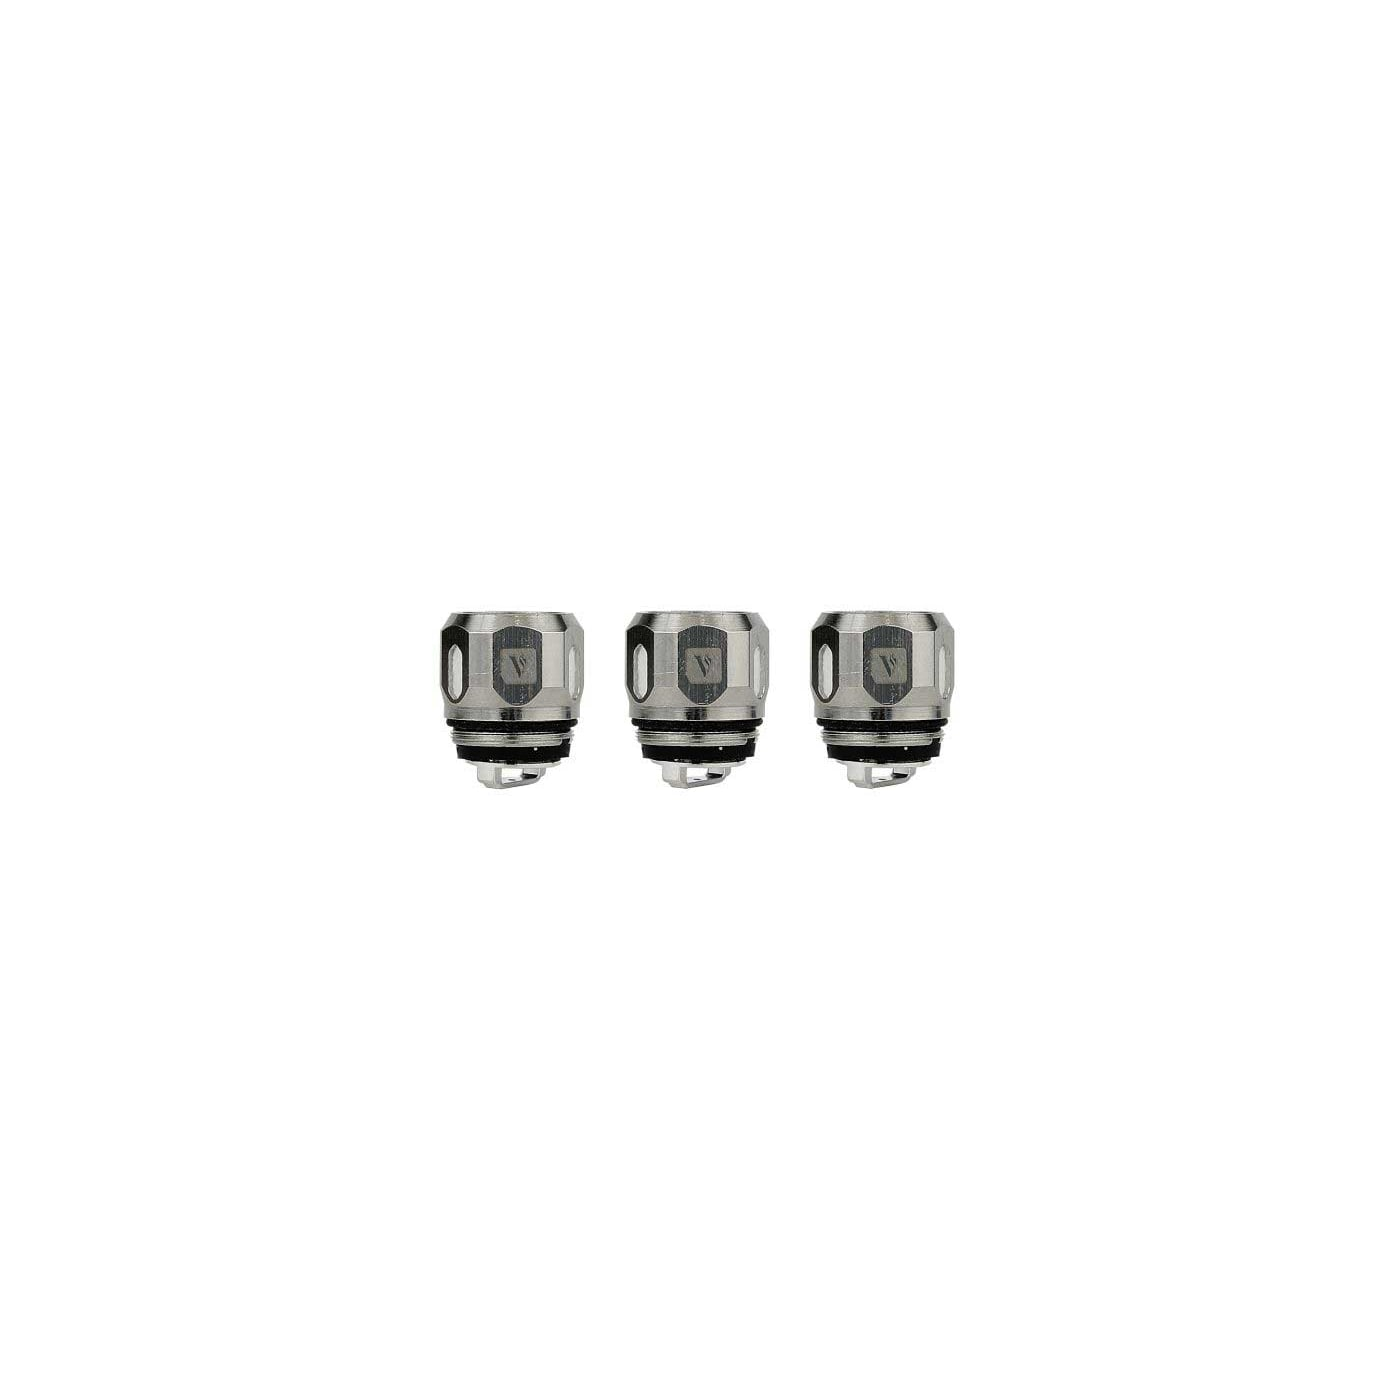 Vaporesso GT6 Core Replacement Coil - 3 Pack